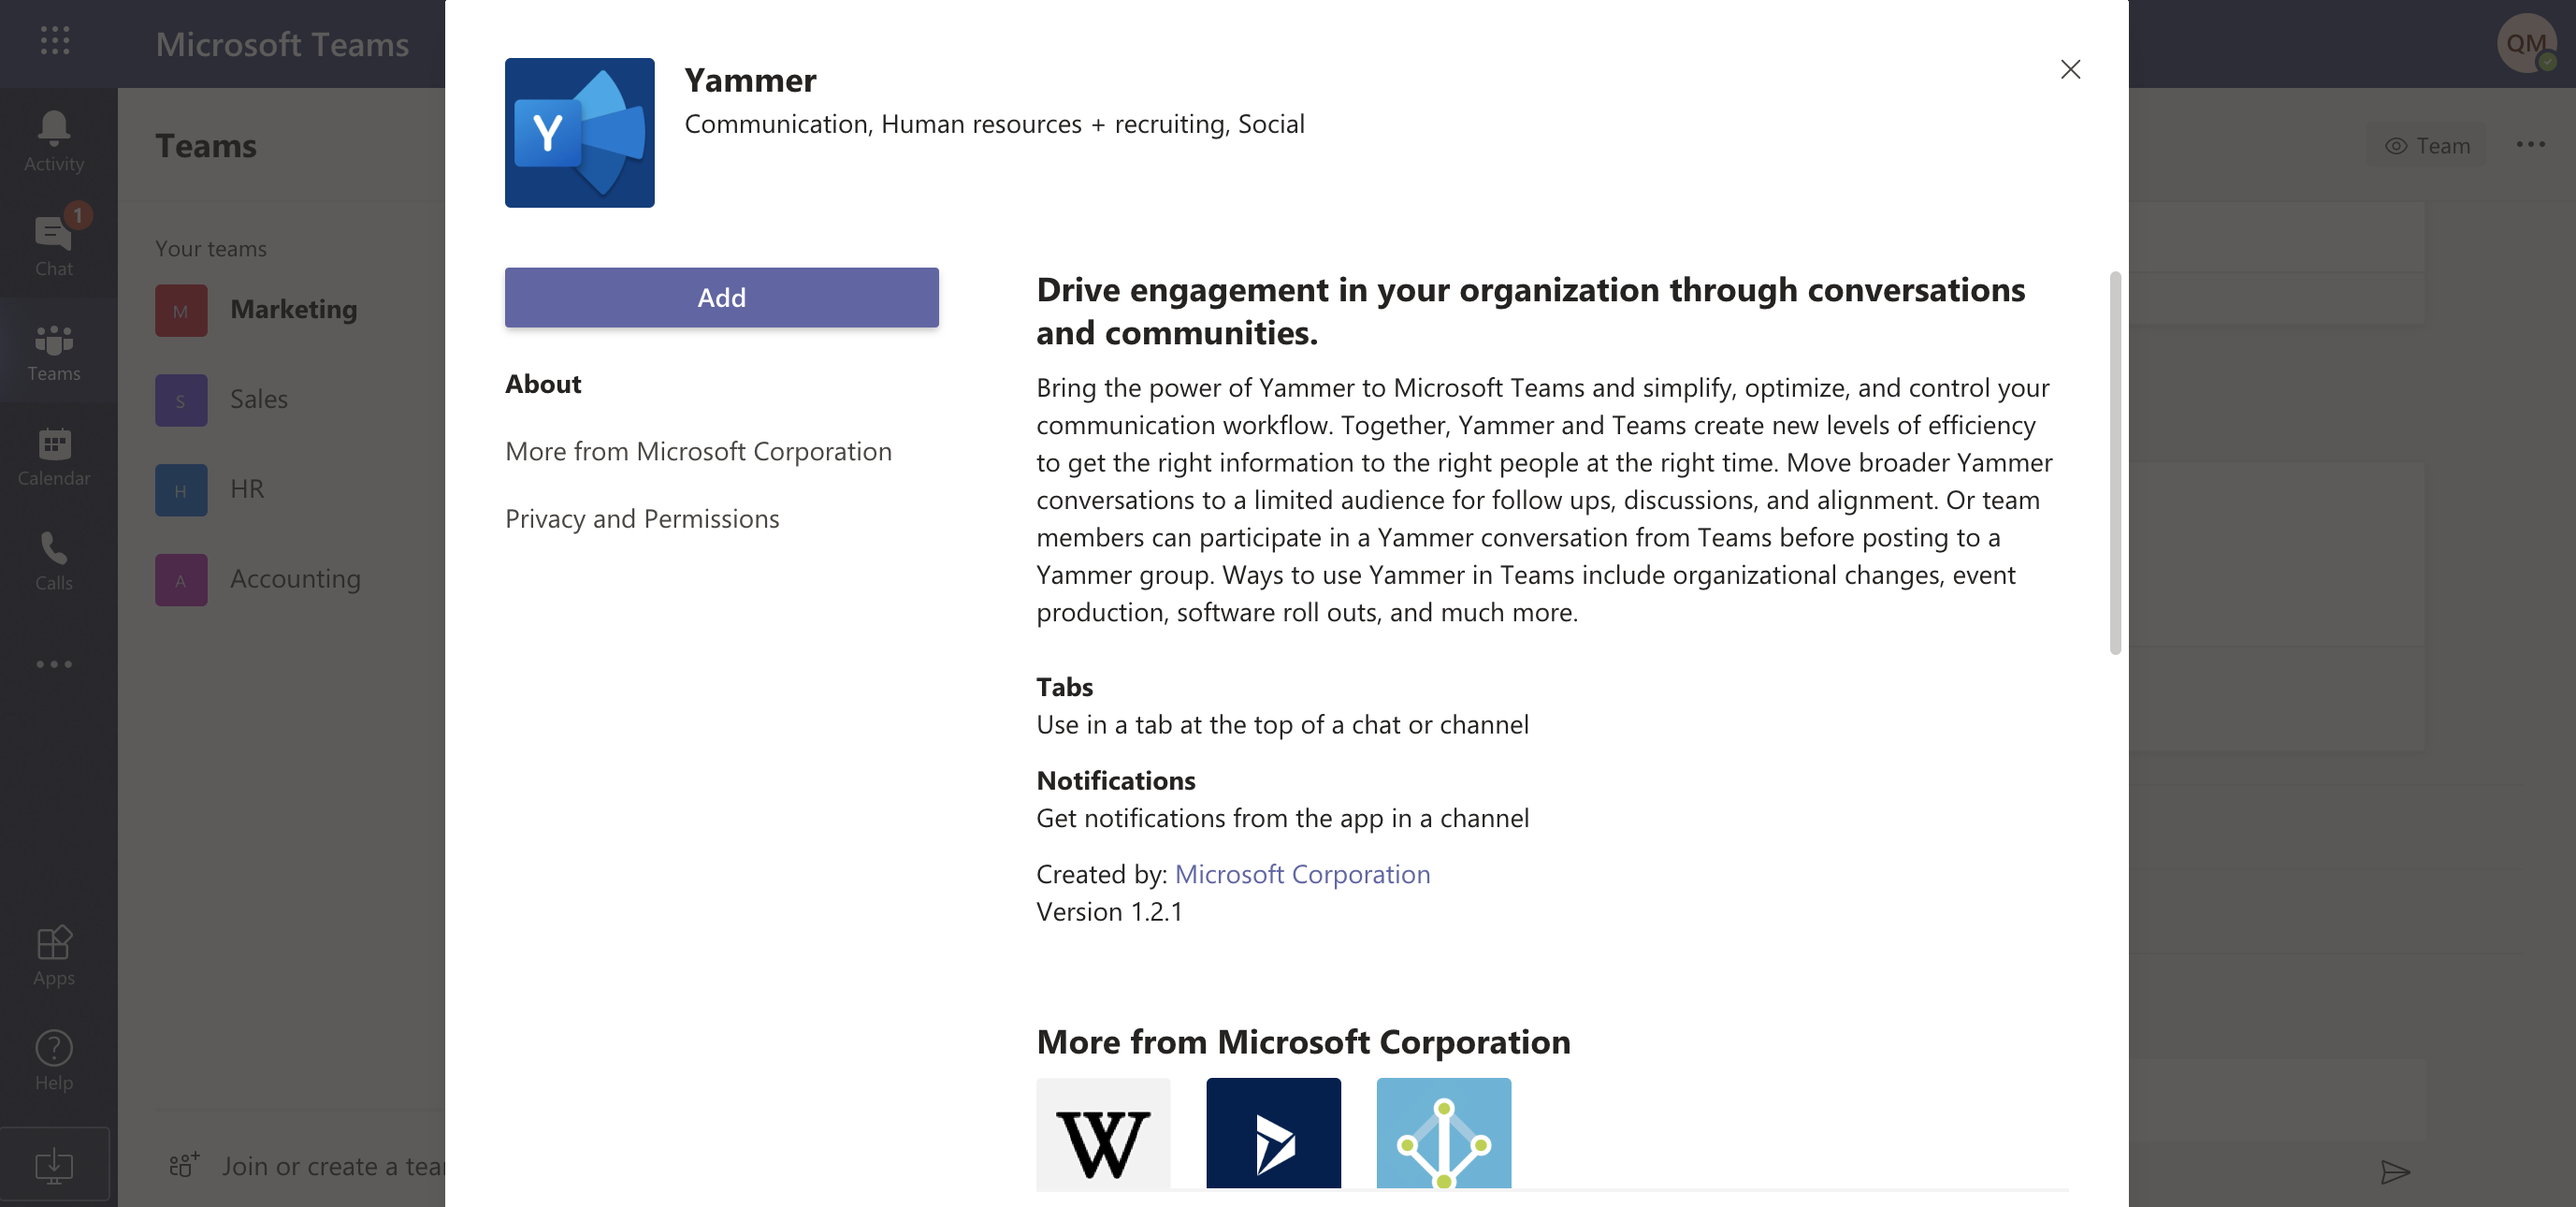 Search for Yammer, then click Add.